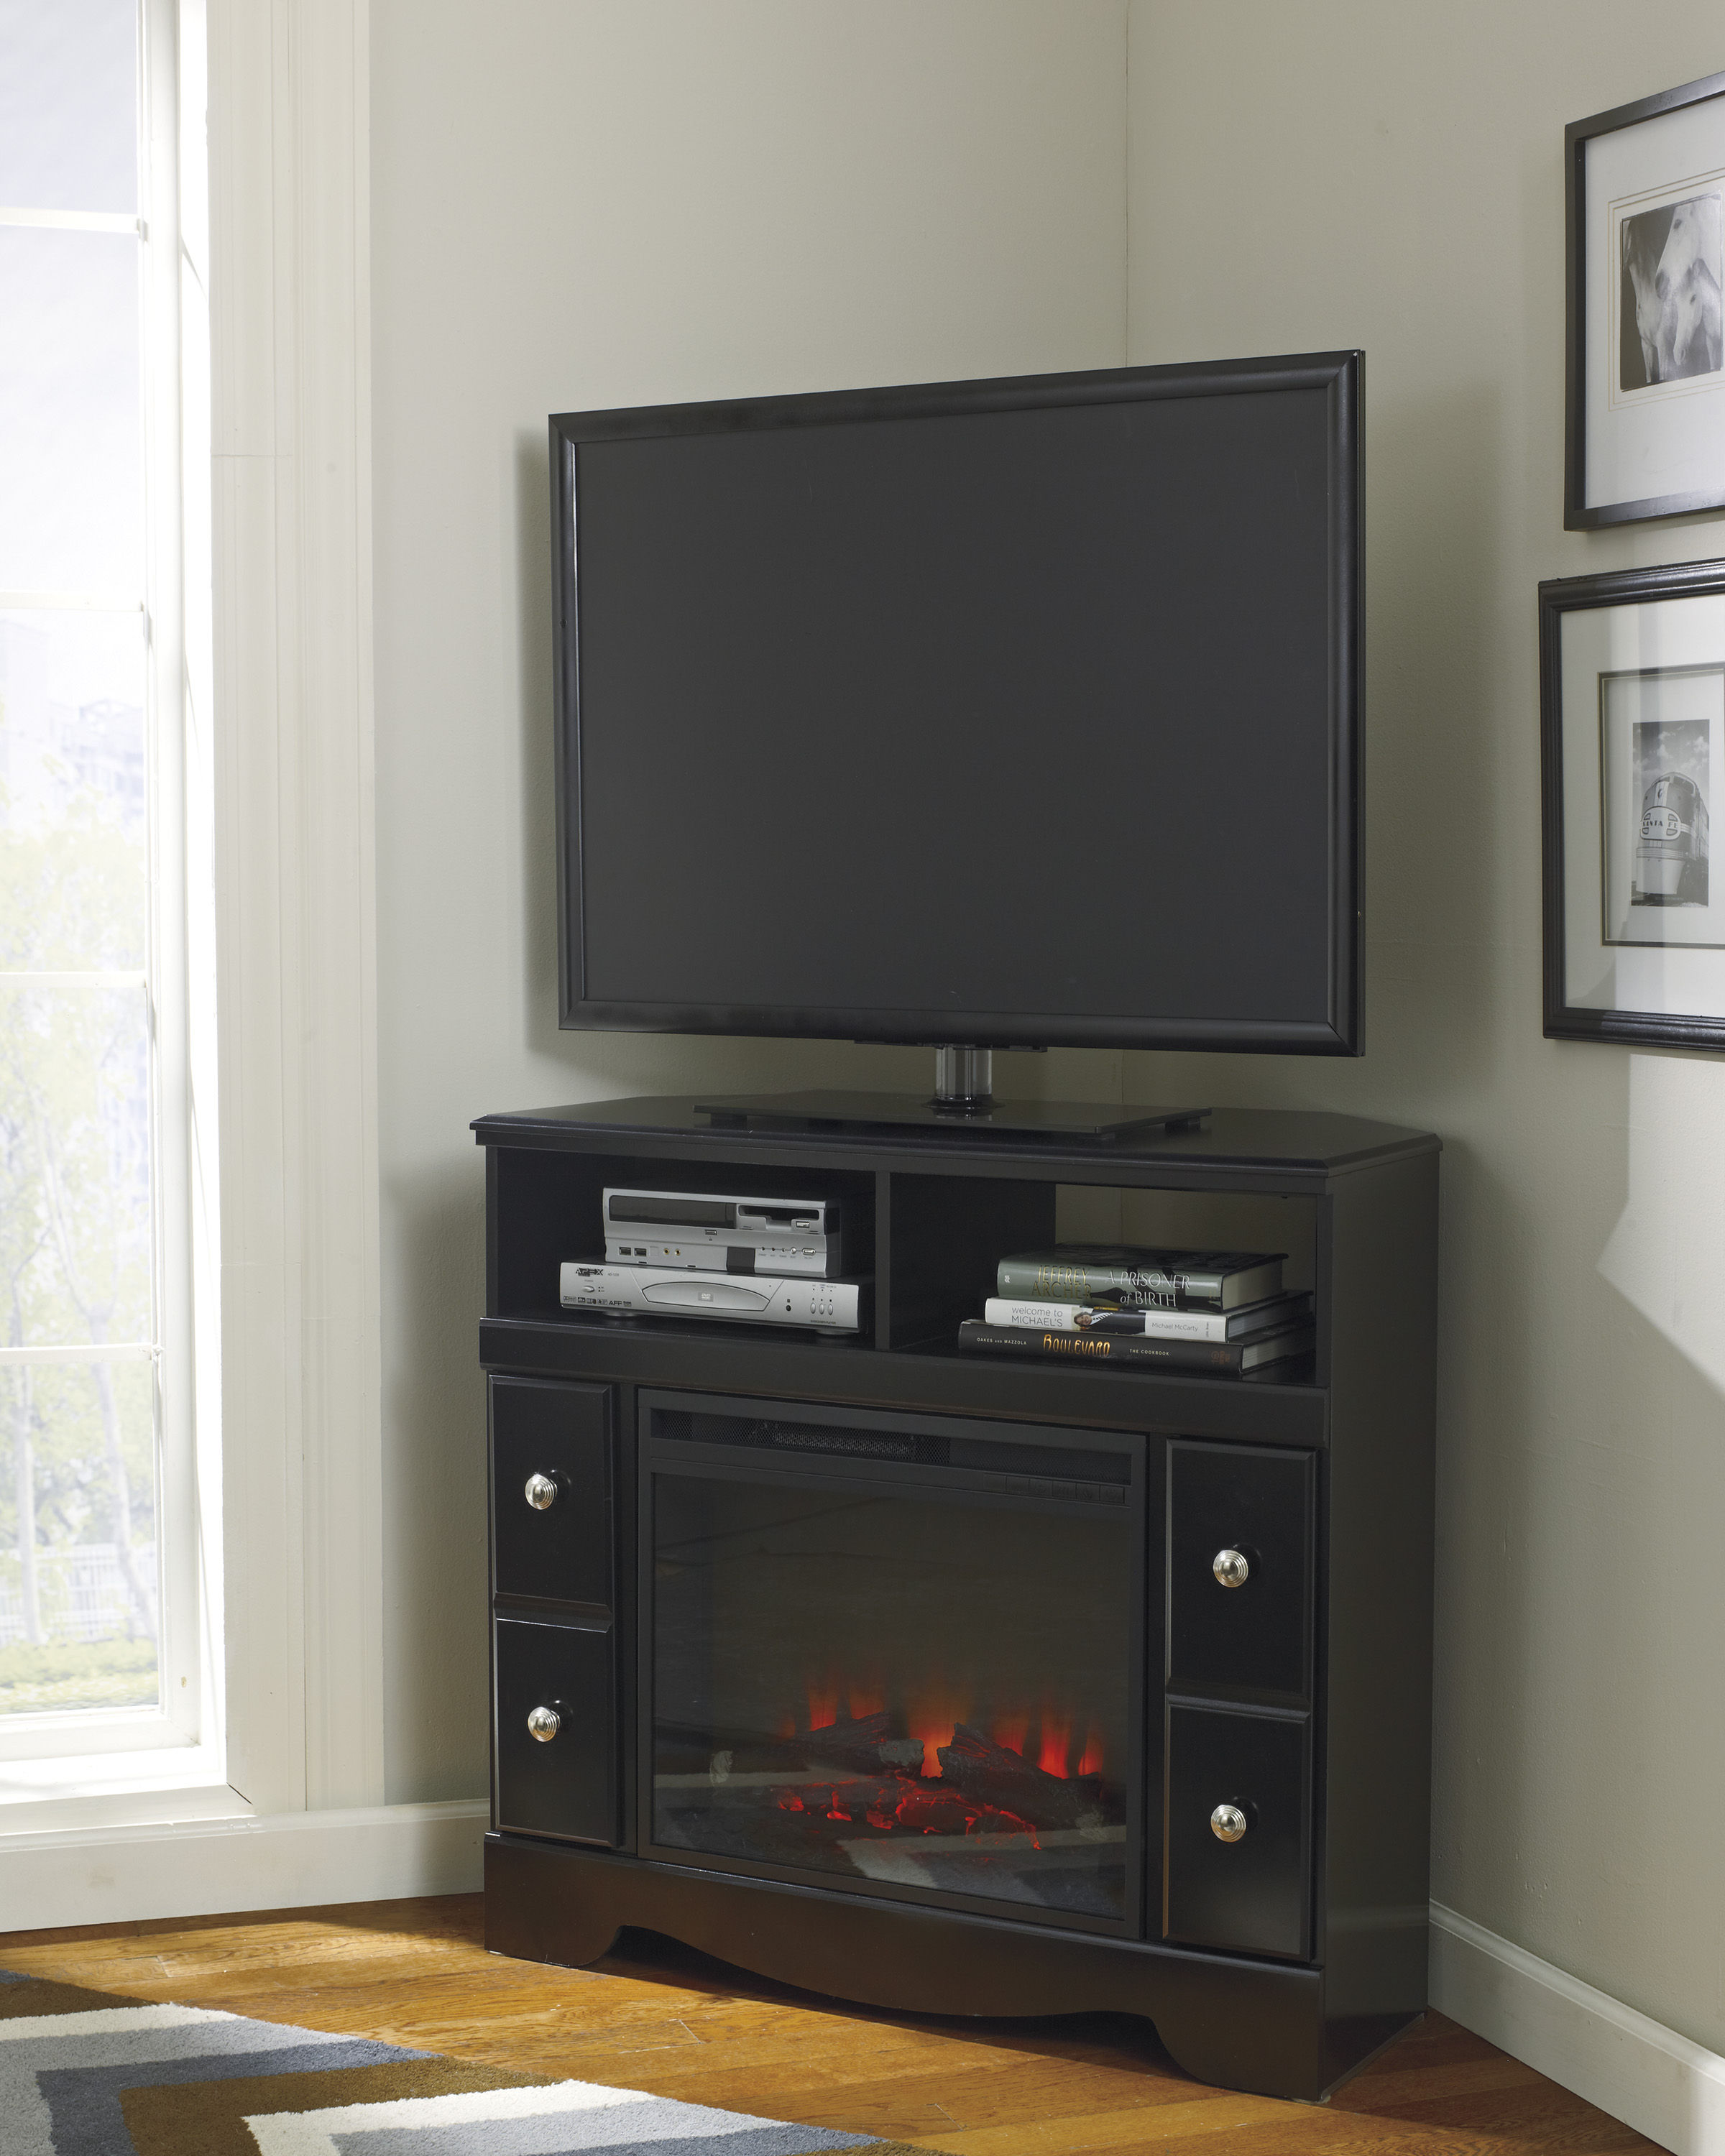 Ashley Furniture Shay Corner Tv Stand With Fireplace The Classy Home